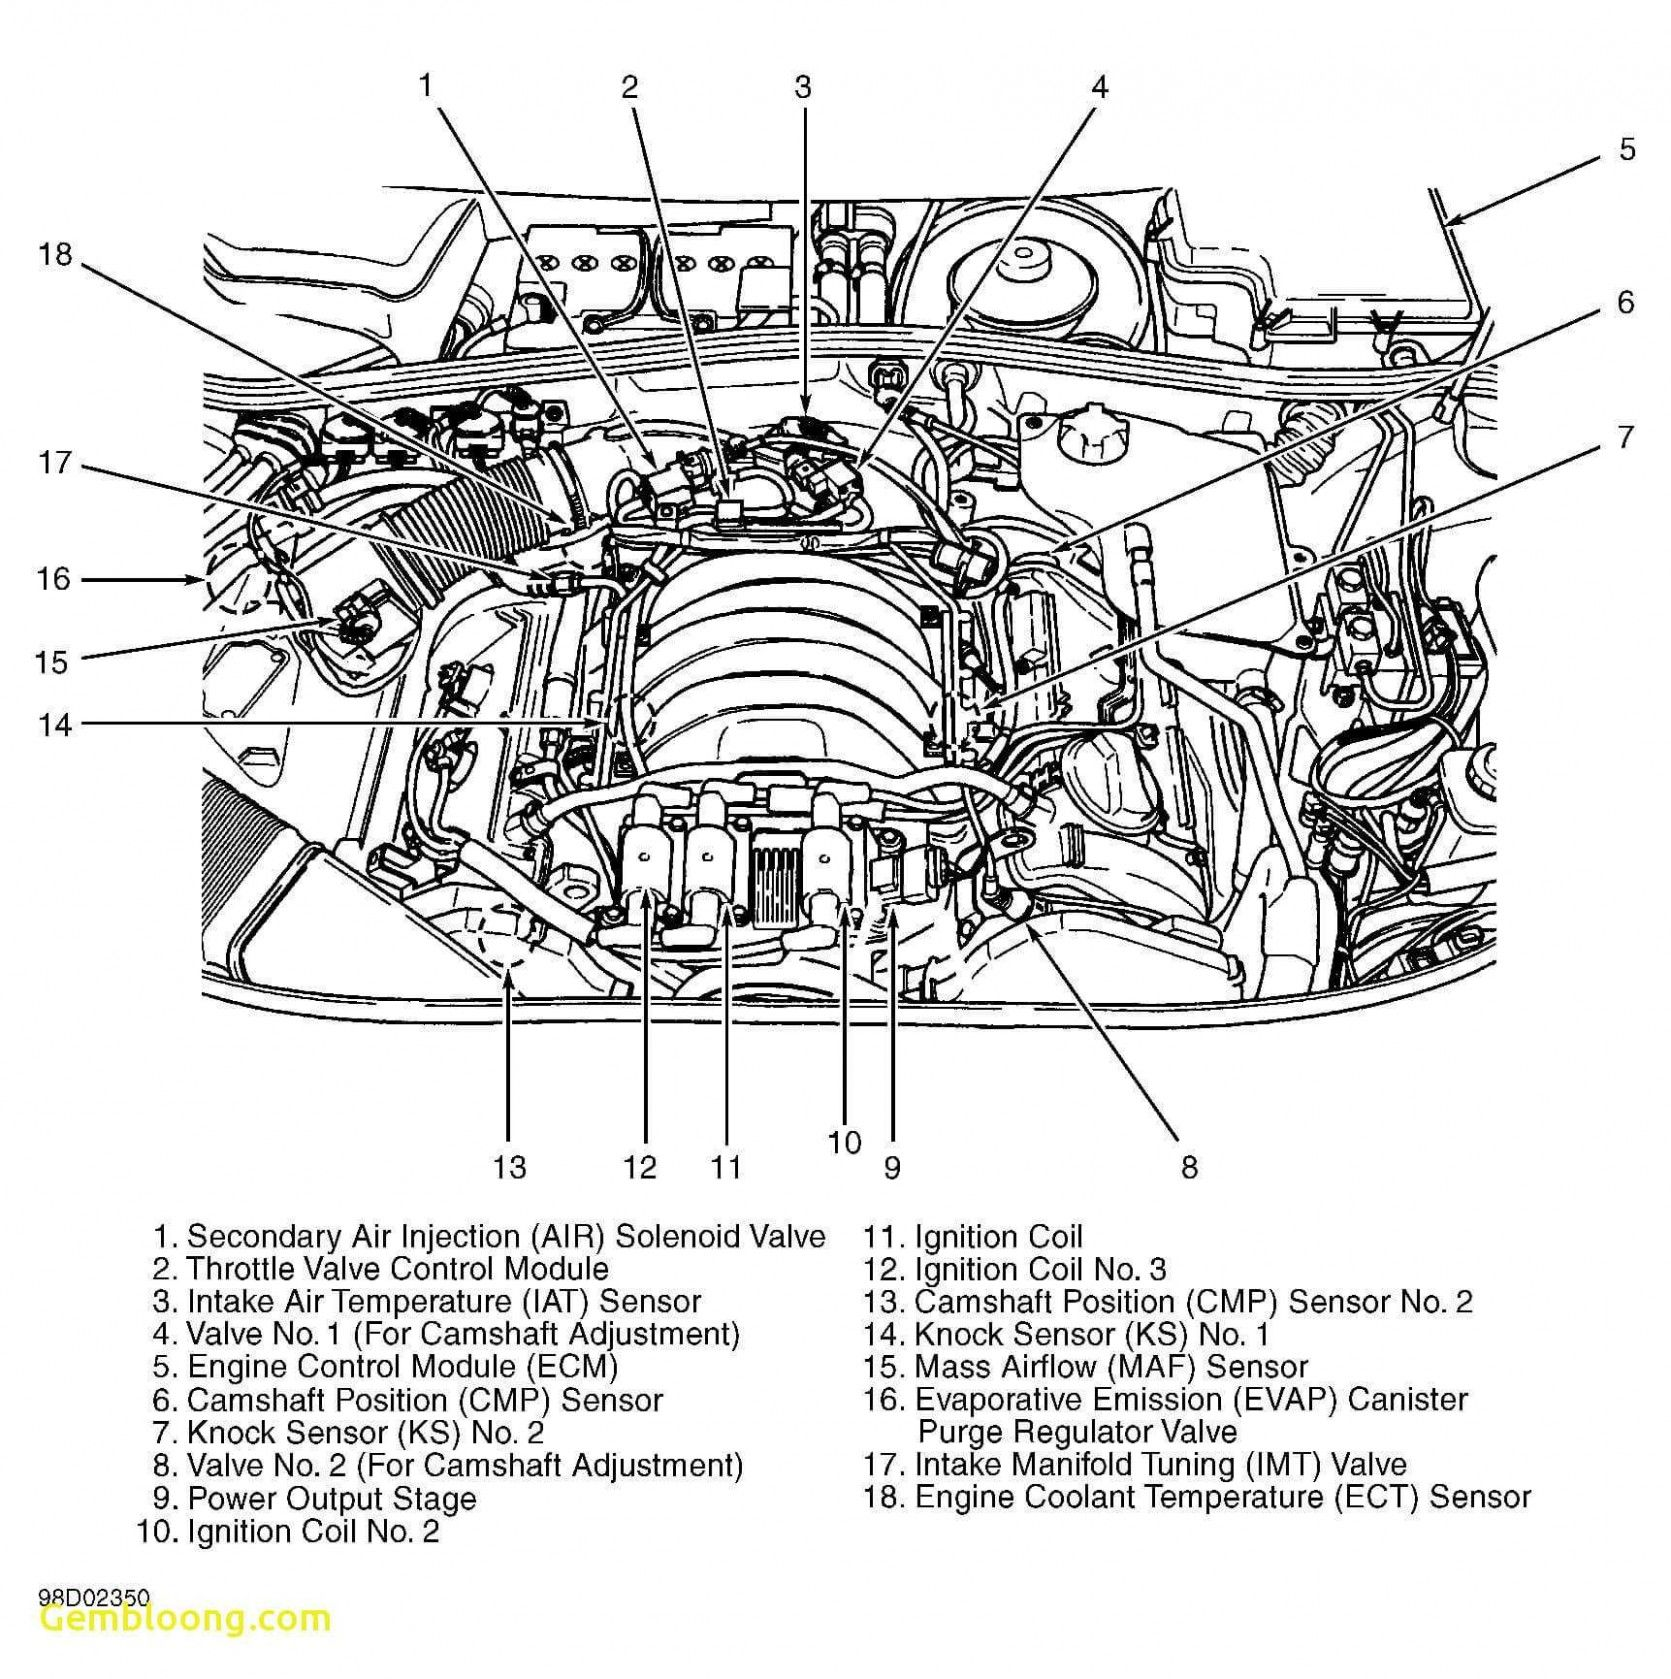 Vw Passat 3 6 Engine Diagram Wiring Diagram Pipe Setup B Pipe Setup B Cinemamanzonicasarano It